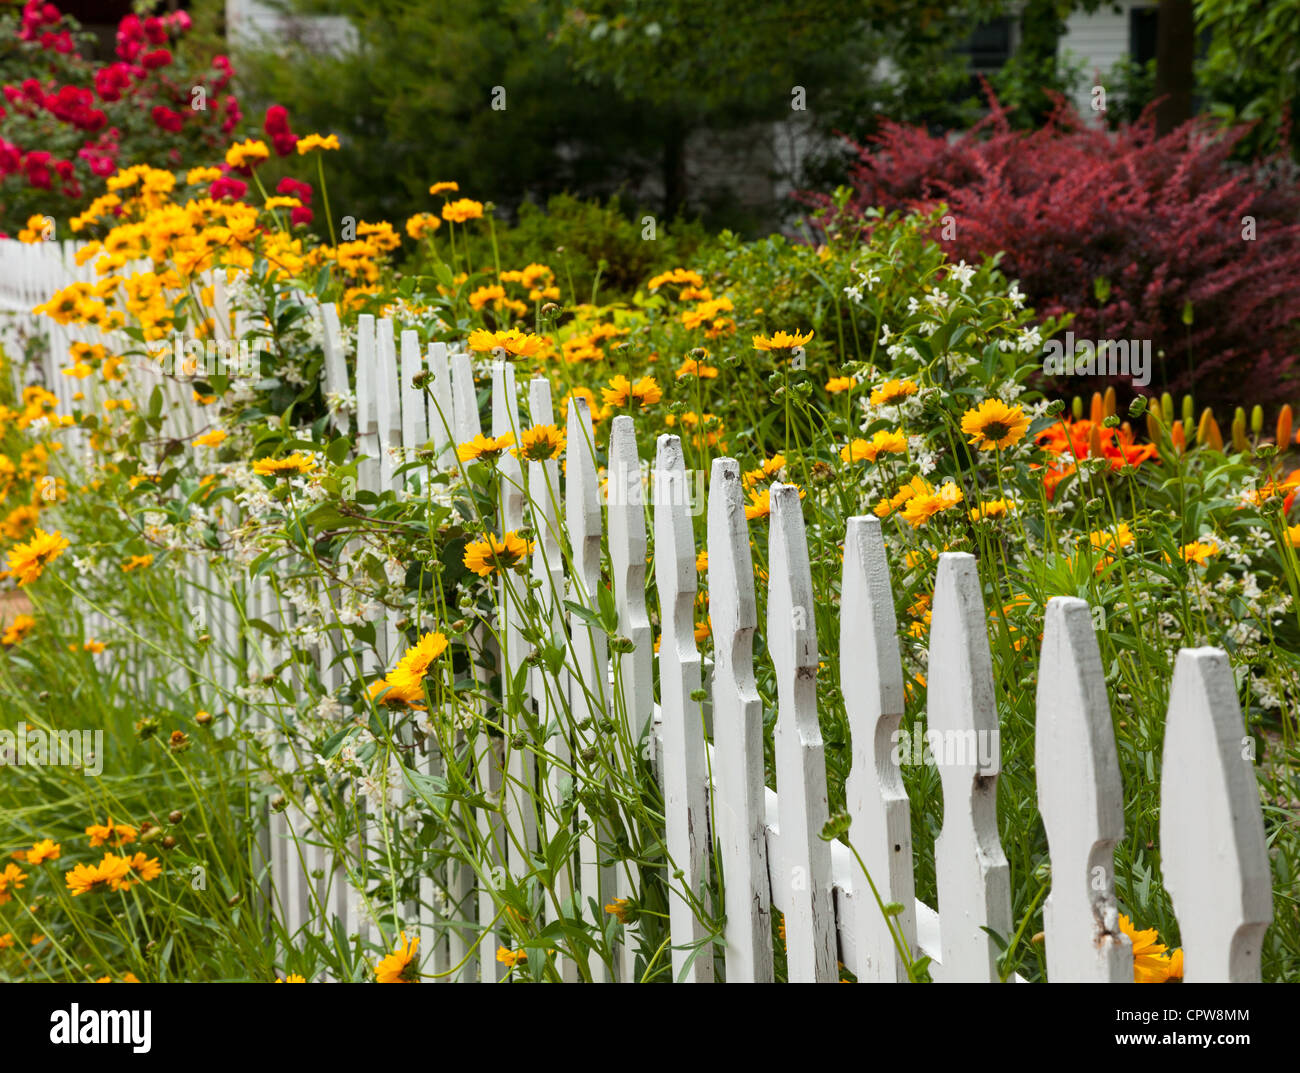 White picket fence around a garden with summer flowers, USA - Stock Image